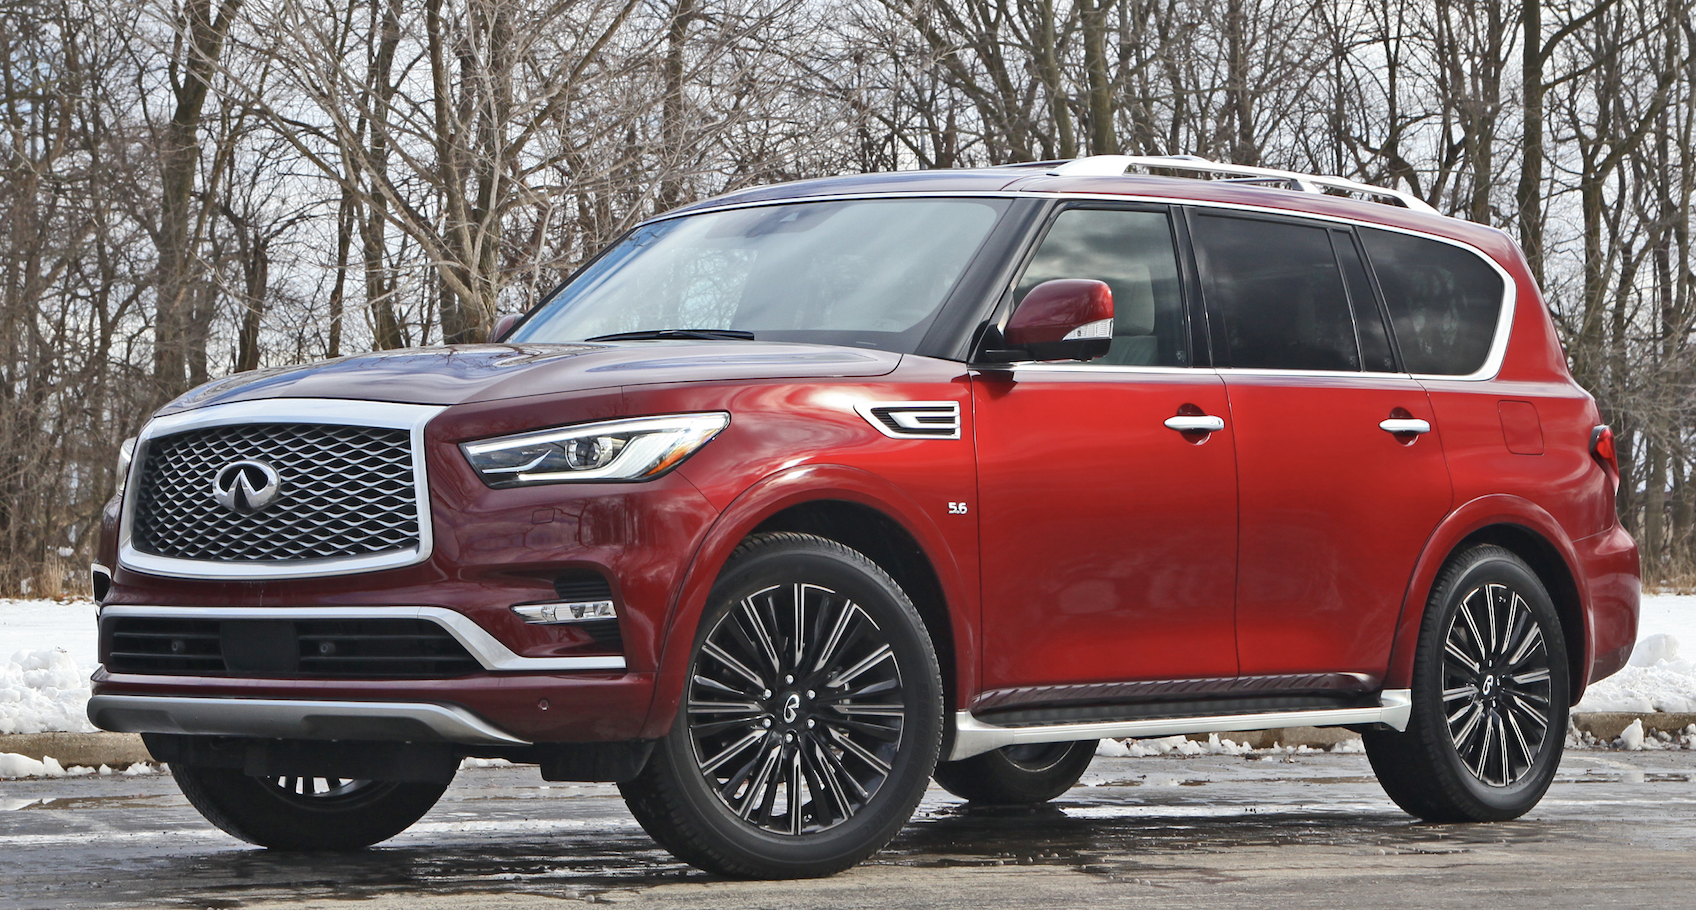 2020 Infiniti QX80 The Daily Drive | Consumer Guide®